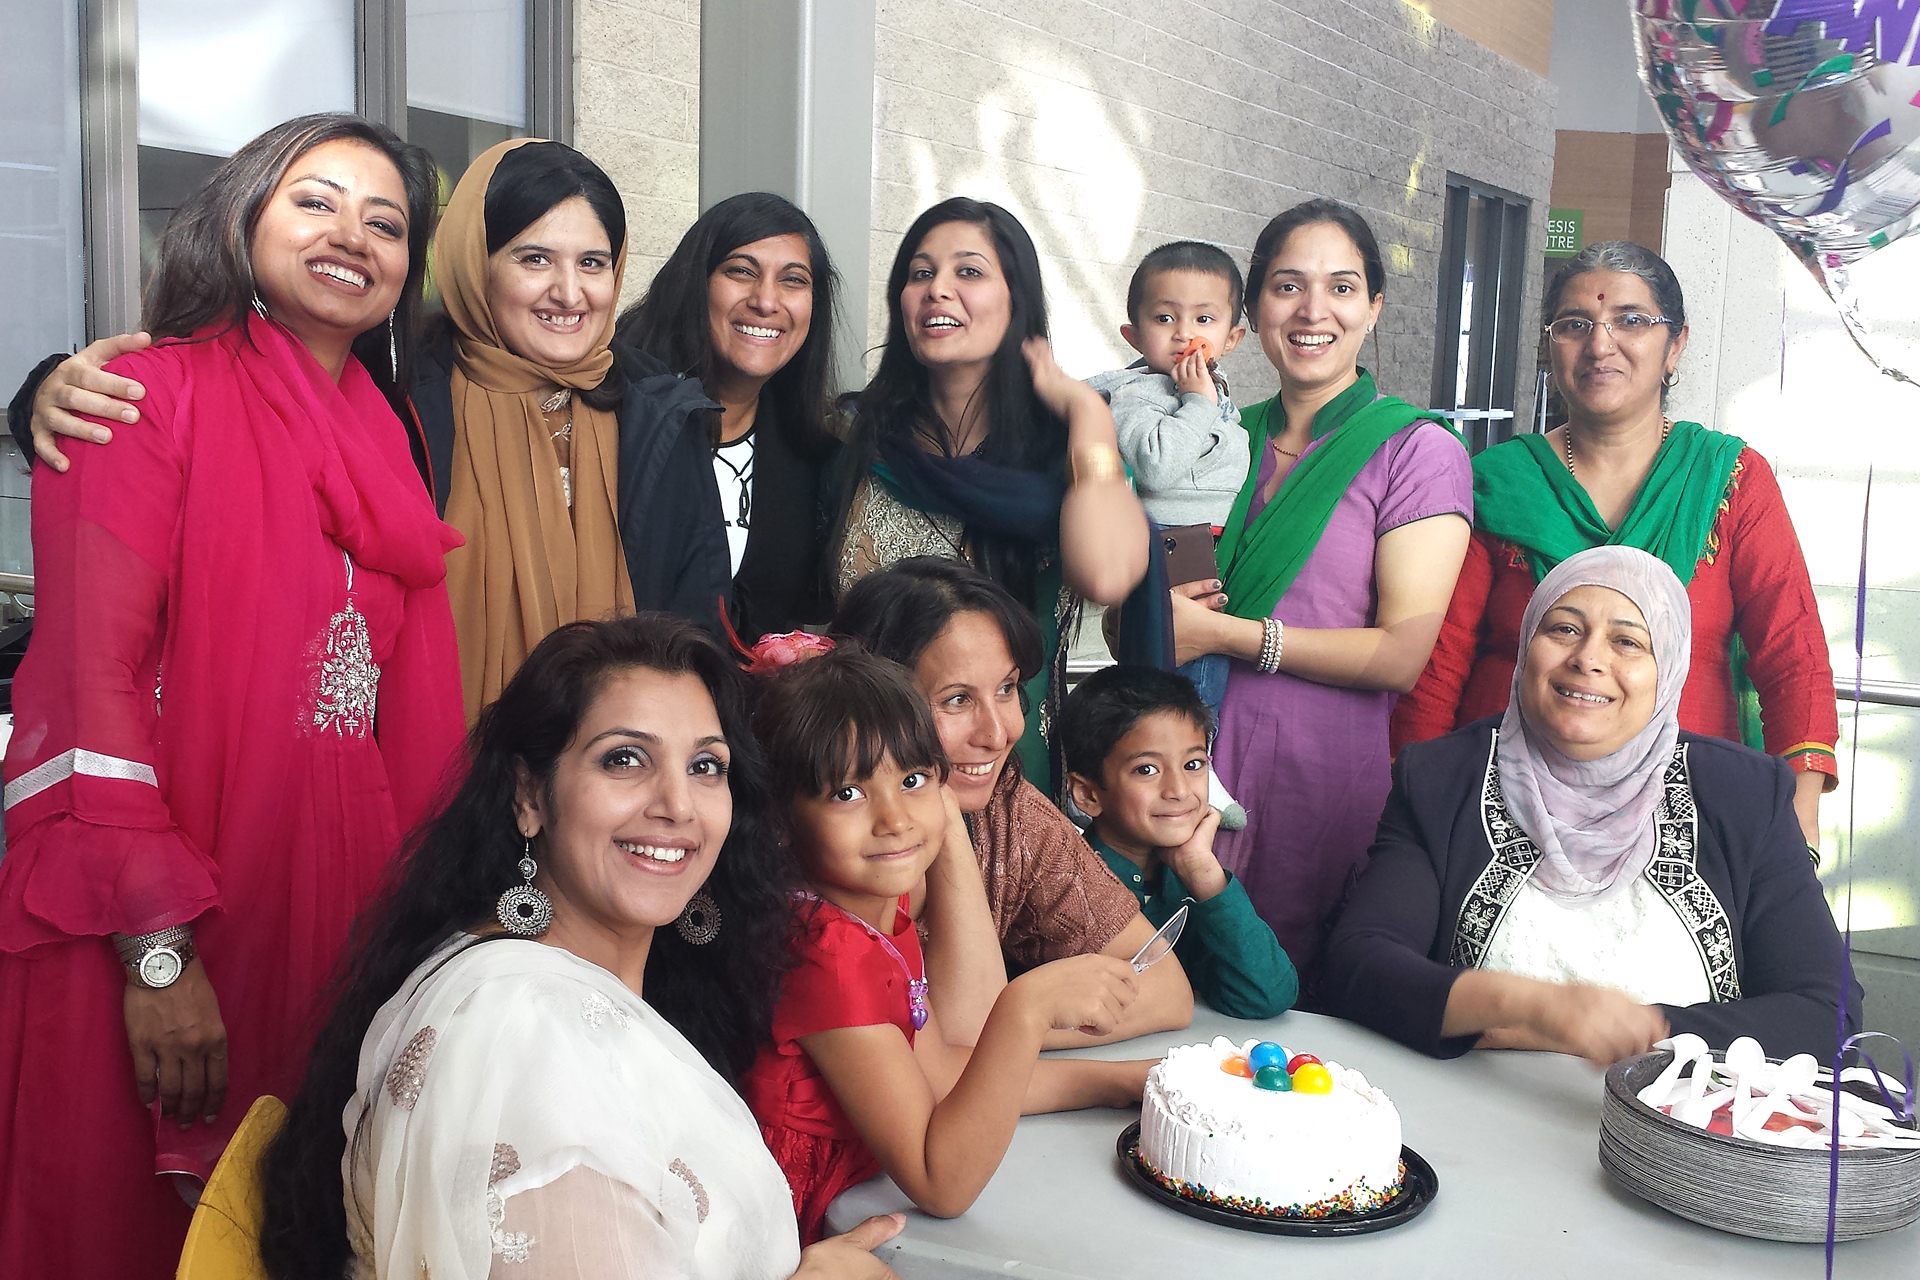 The Women Support Group Calgary celebrated its first year in October.